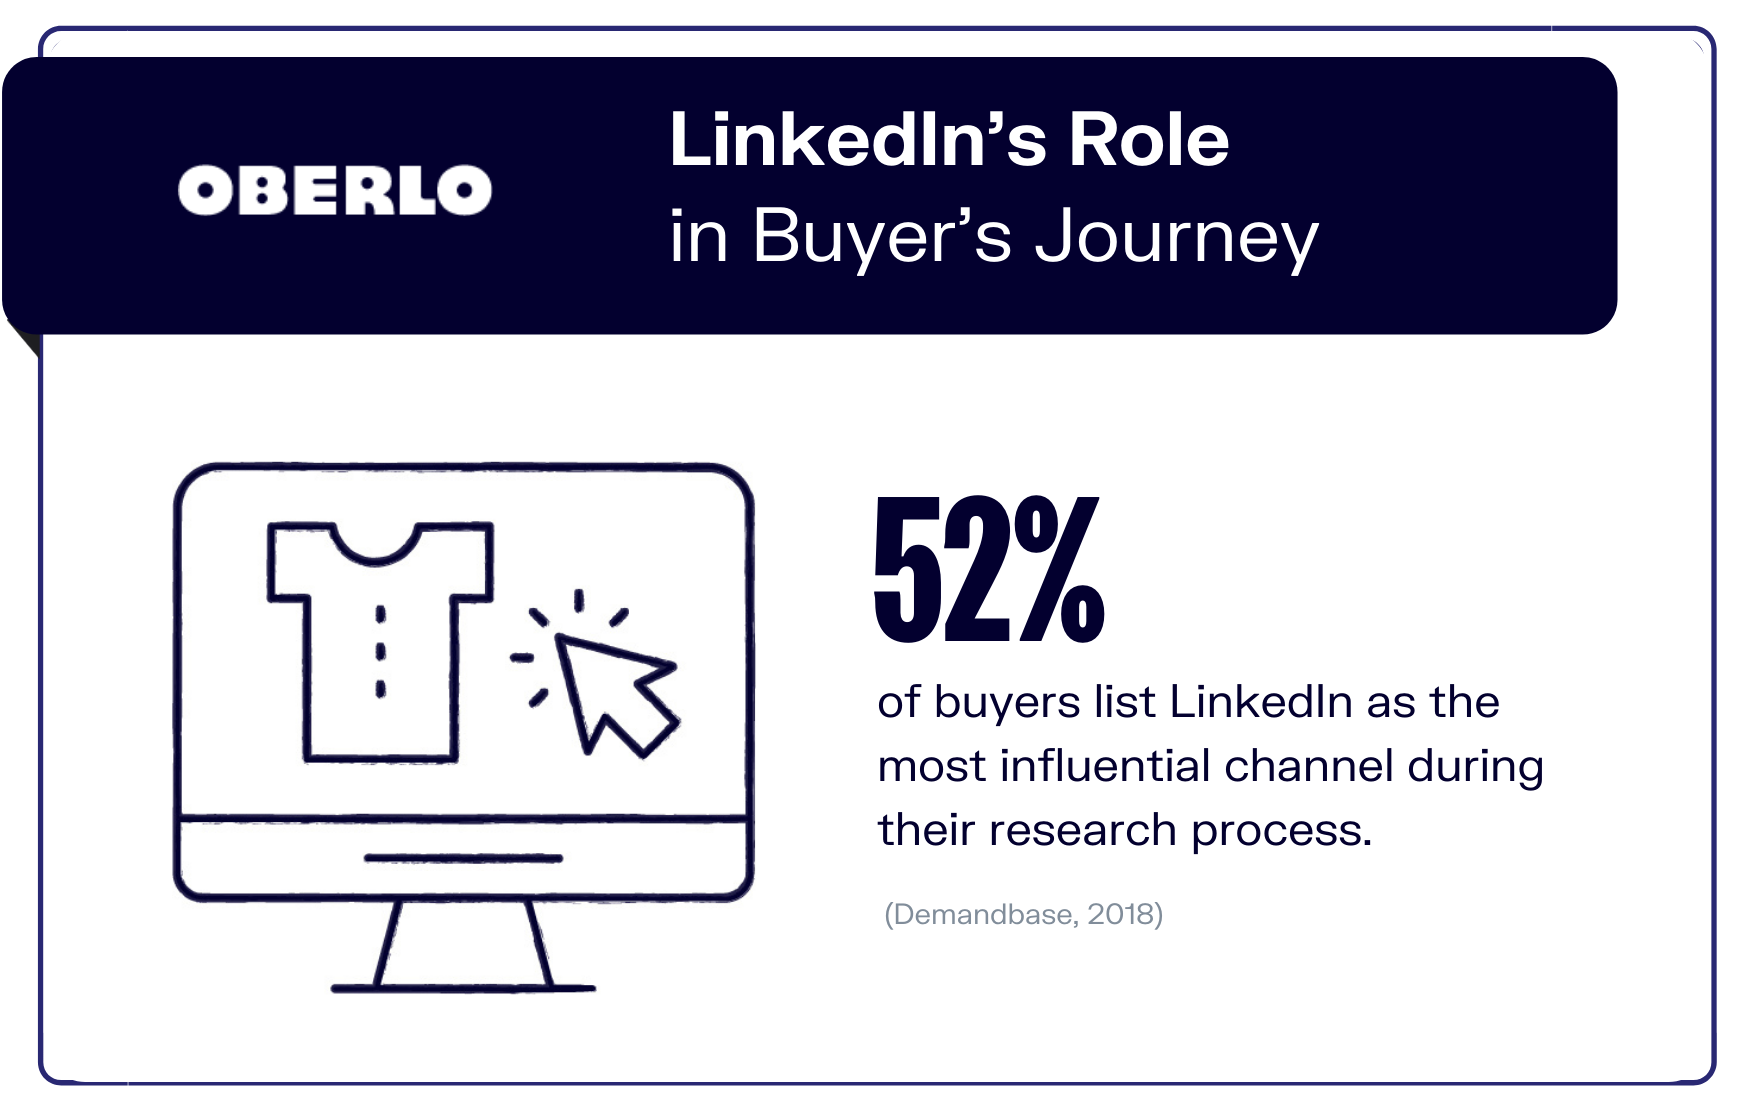 LinkedIn's Role in Buyer's Journey graphic